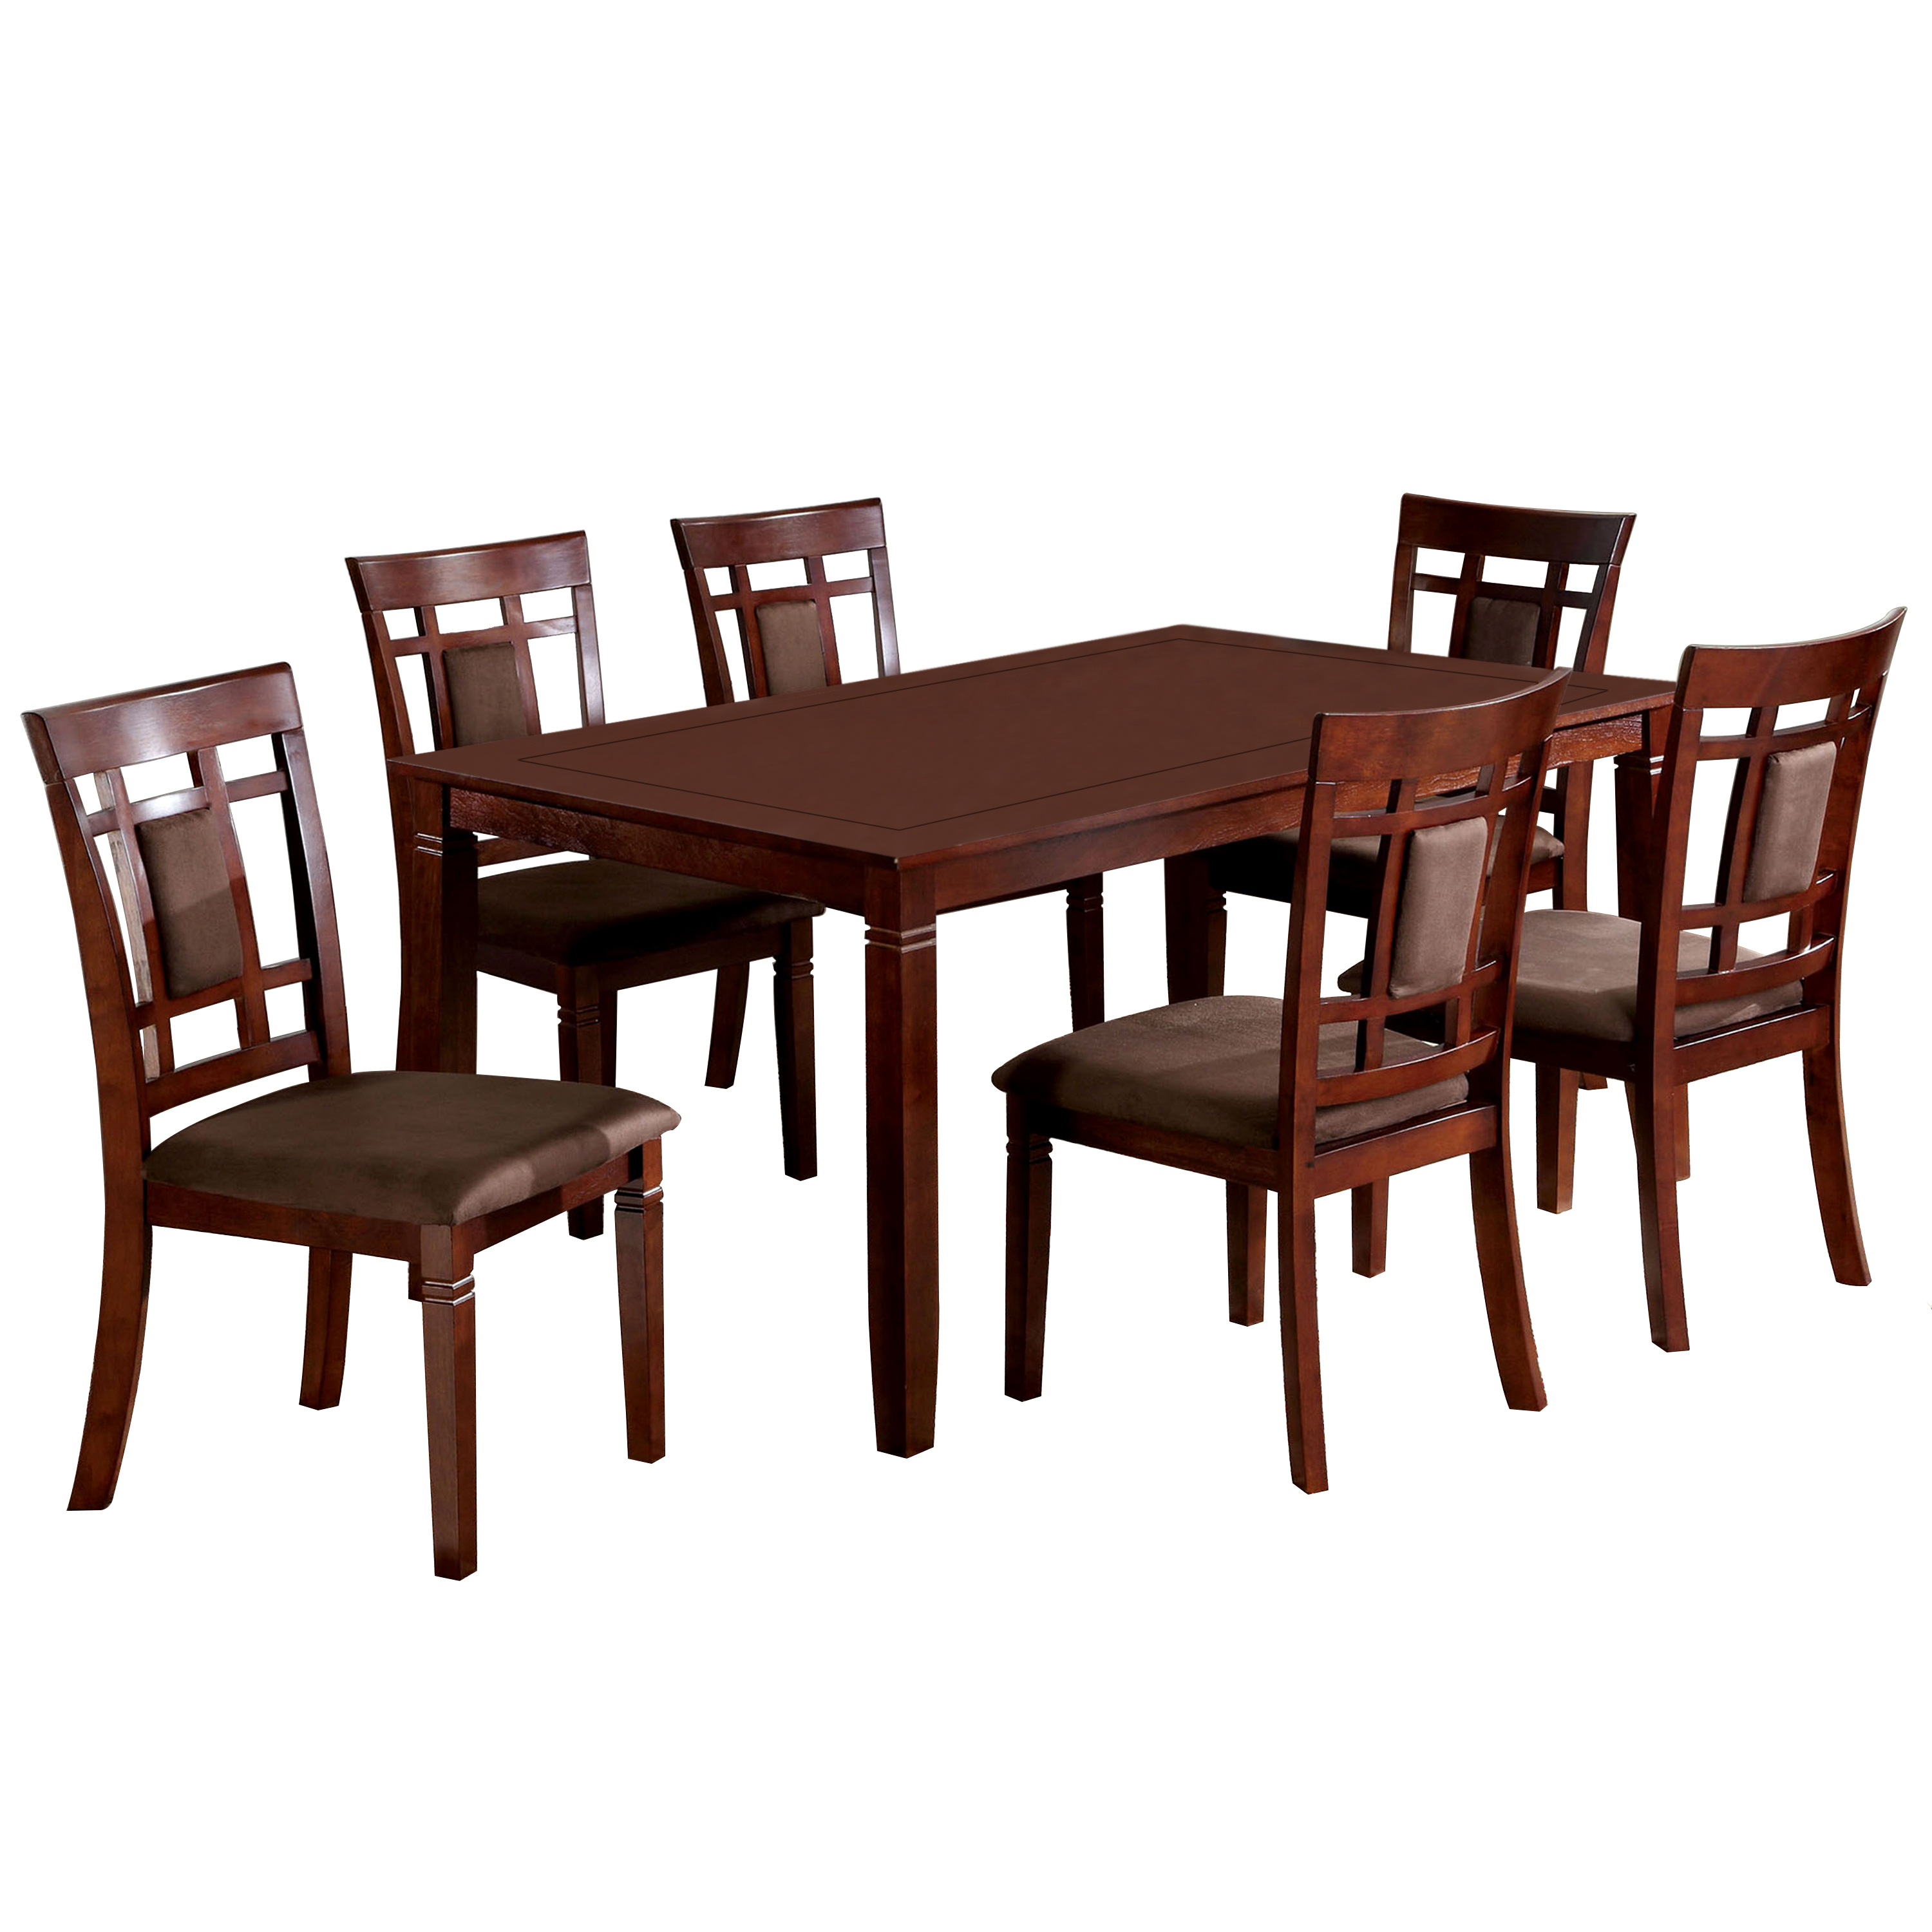 Venetian Montclair 7-Piece Dining Set, Dark Cherry, Box 1 of 2